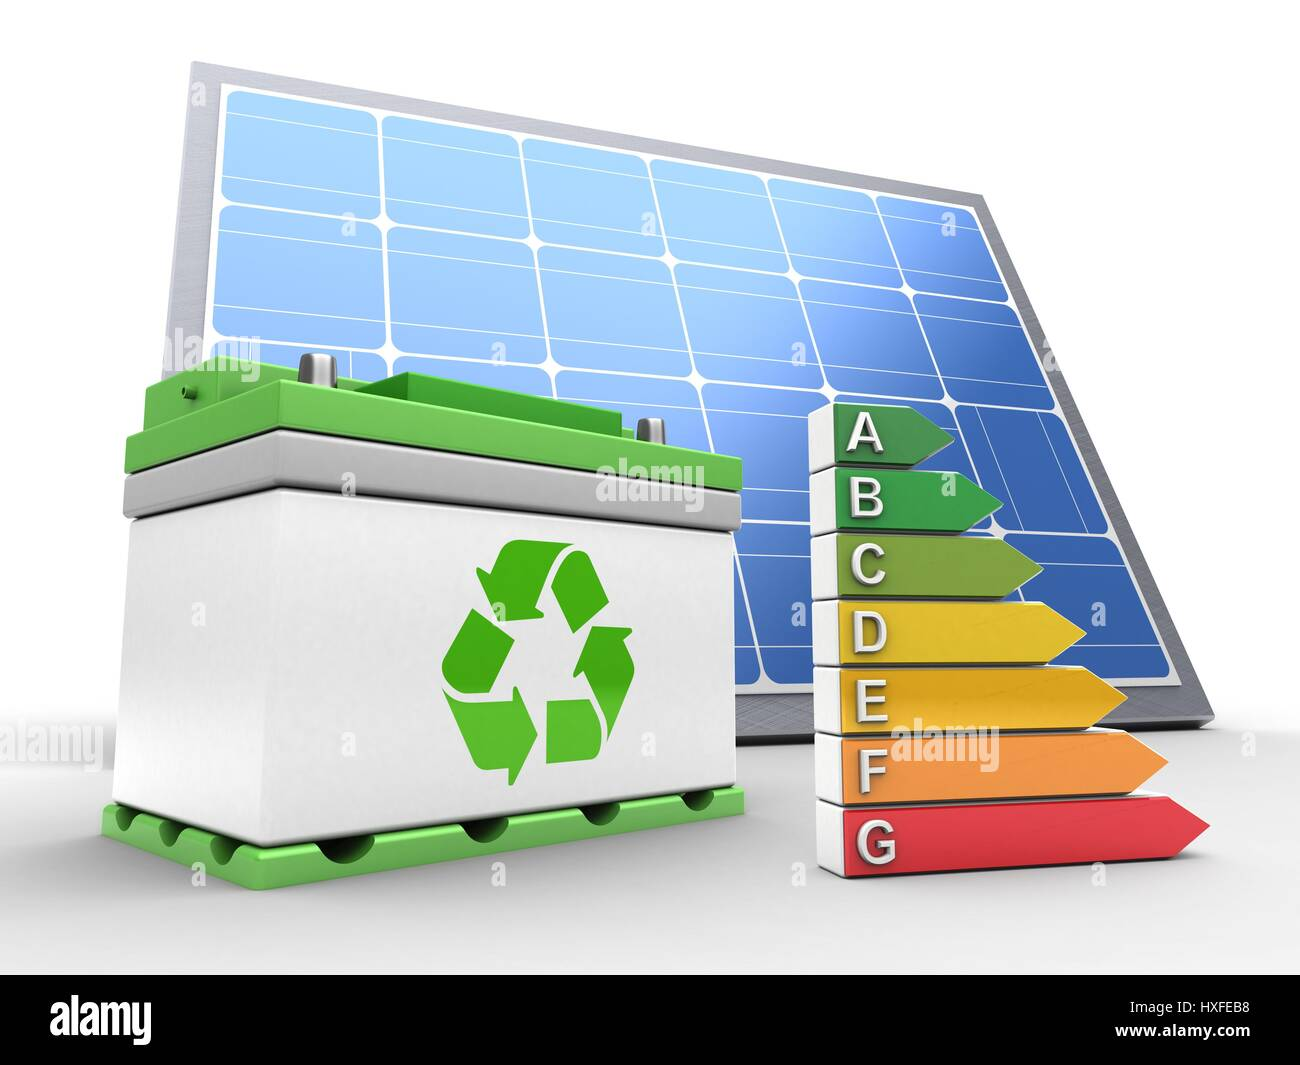 Electric Car Battery Diagram Stock Photos Solar 3d Illustration Of Over White Background With Panel And Efficient Ranks